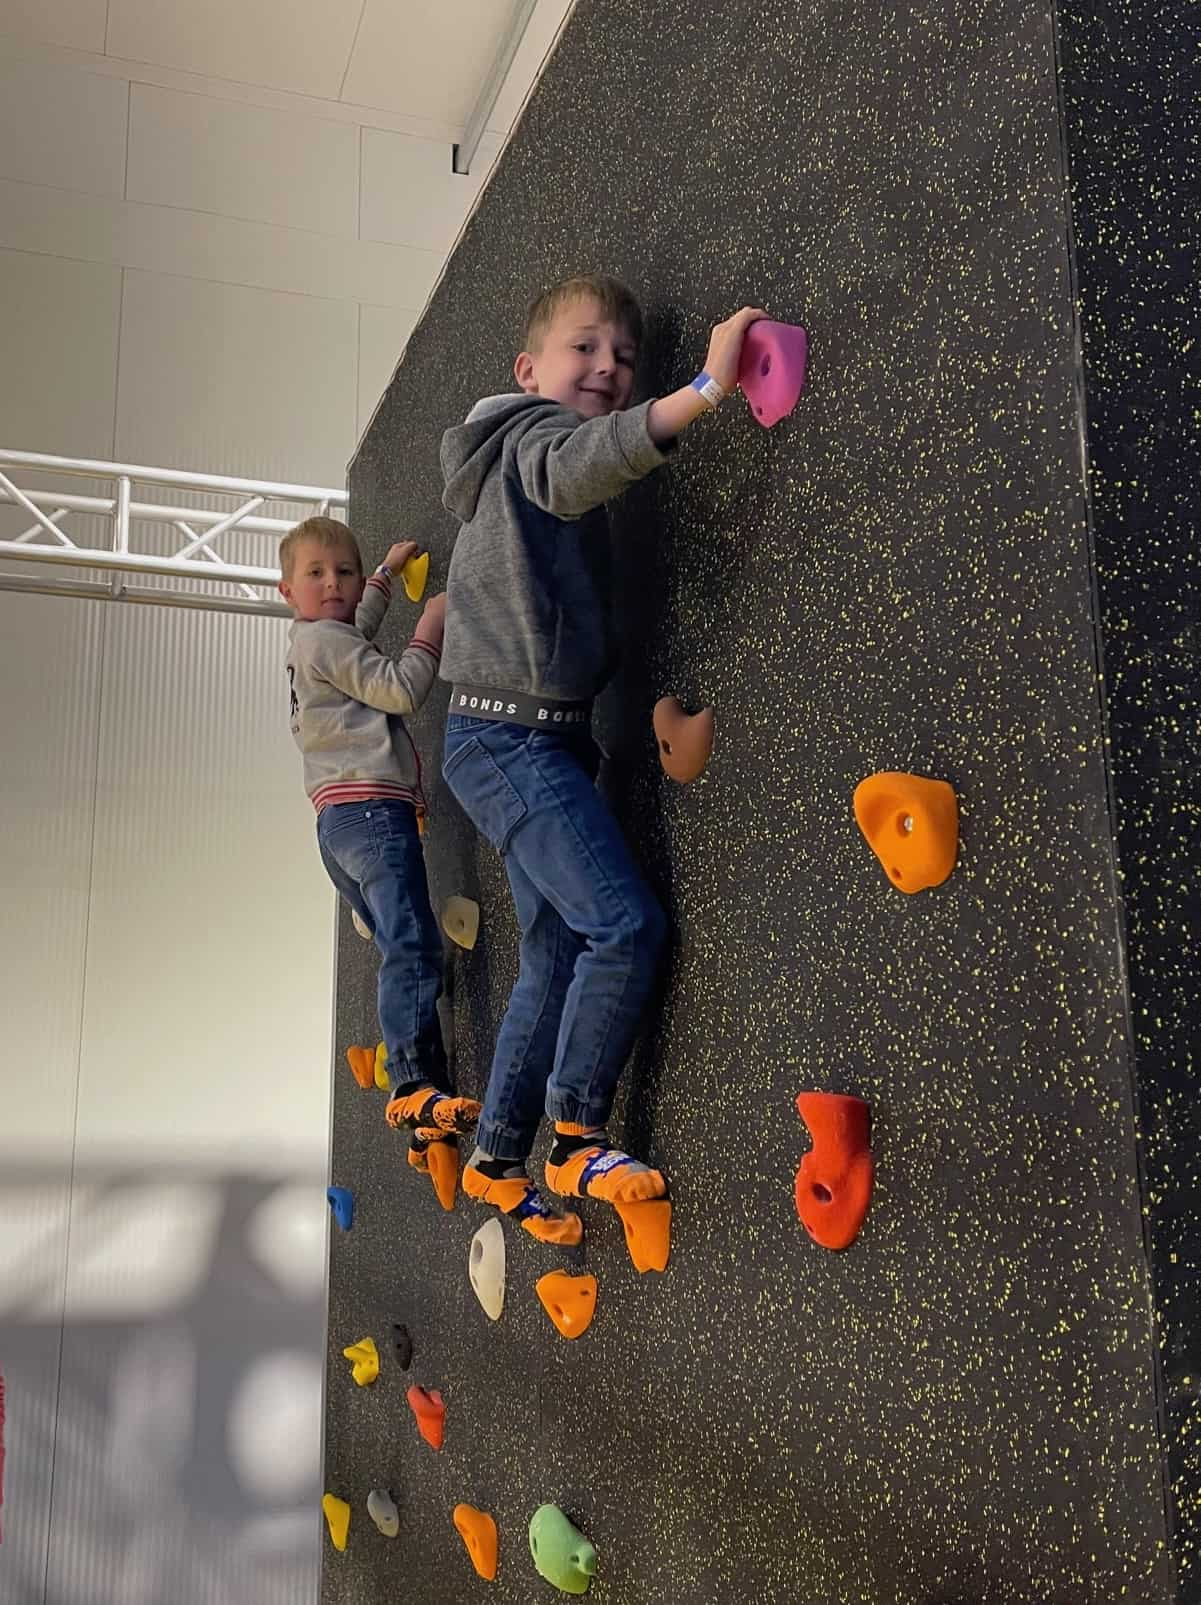 Two boys on a climbing wall.